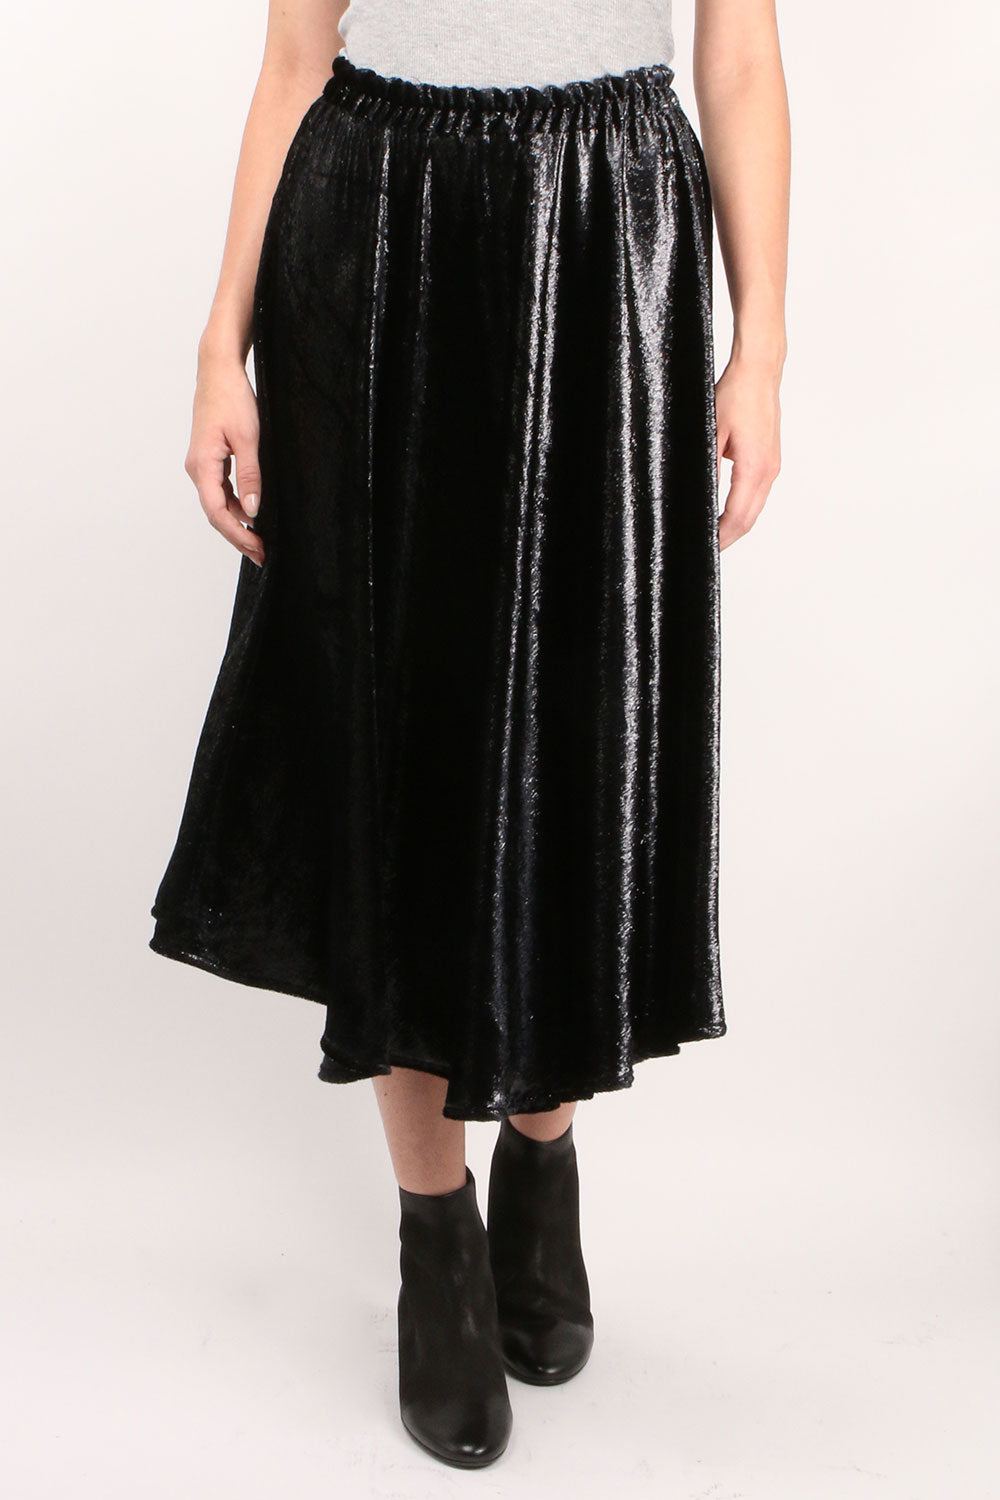 Vivien Velvet Skirt Black Shine